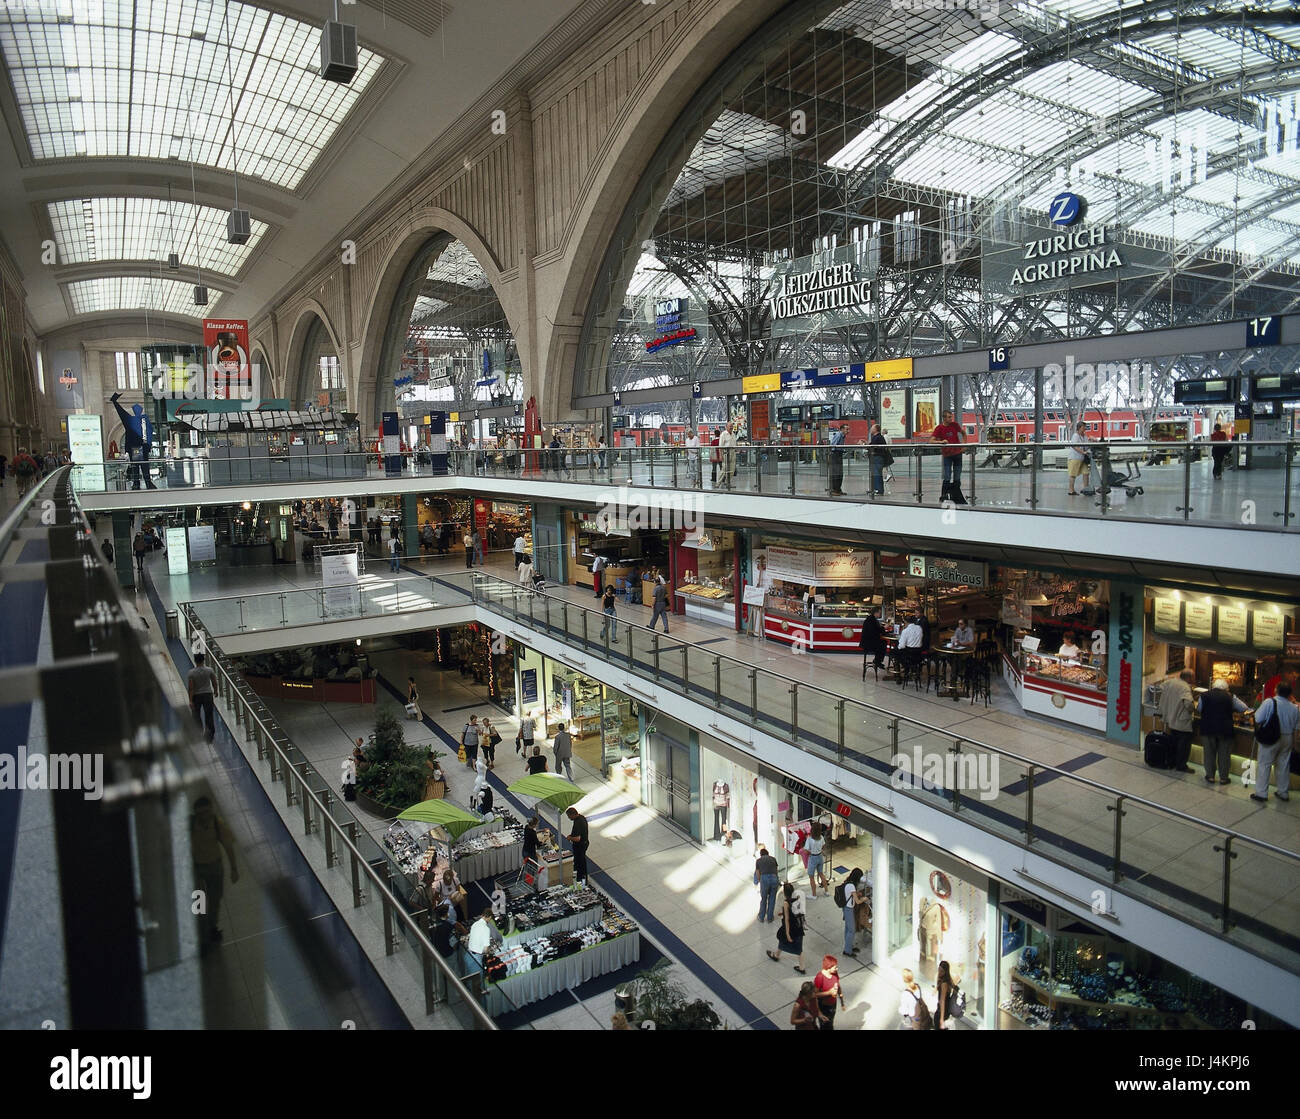 Germany, Saxony, Leipzig, central station, 'promenades', shopping arcade, passer-by town, centre, space - Stock Image